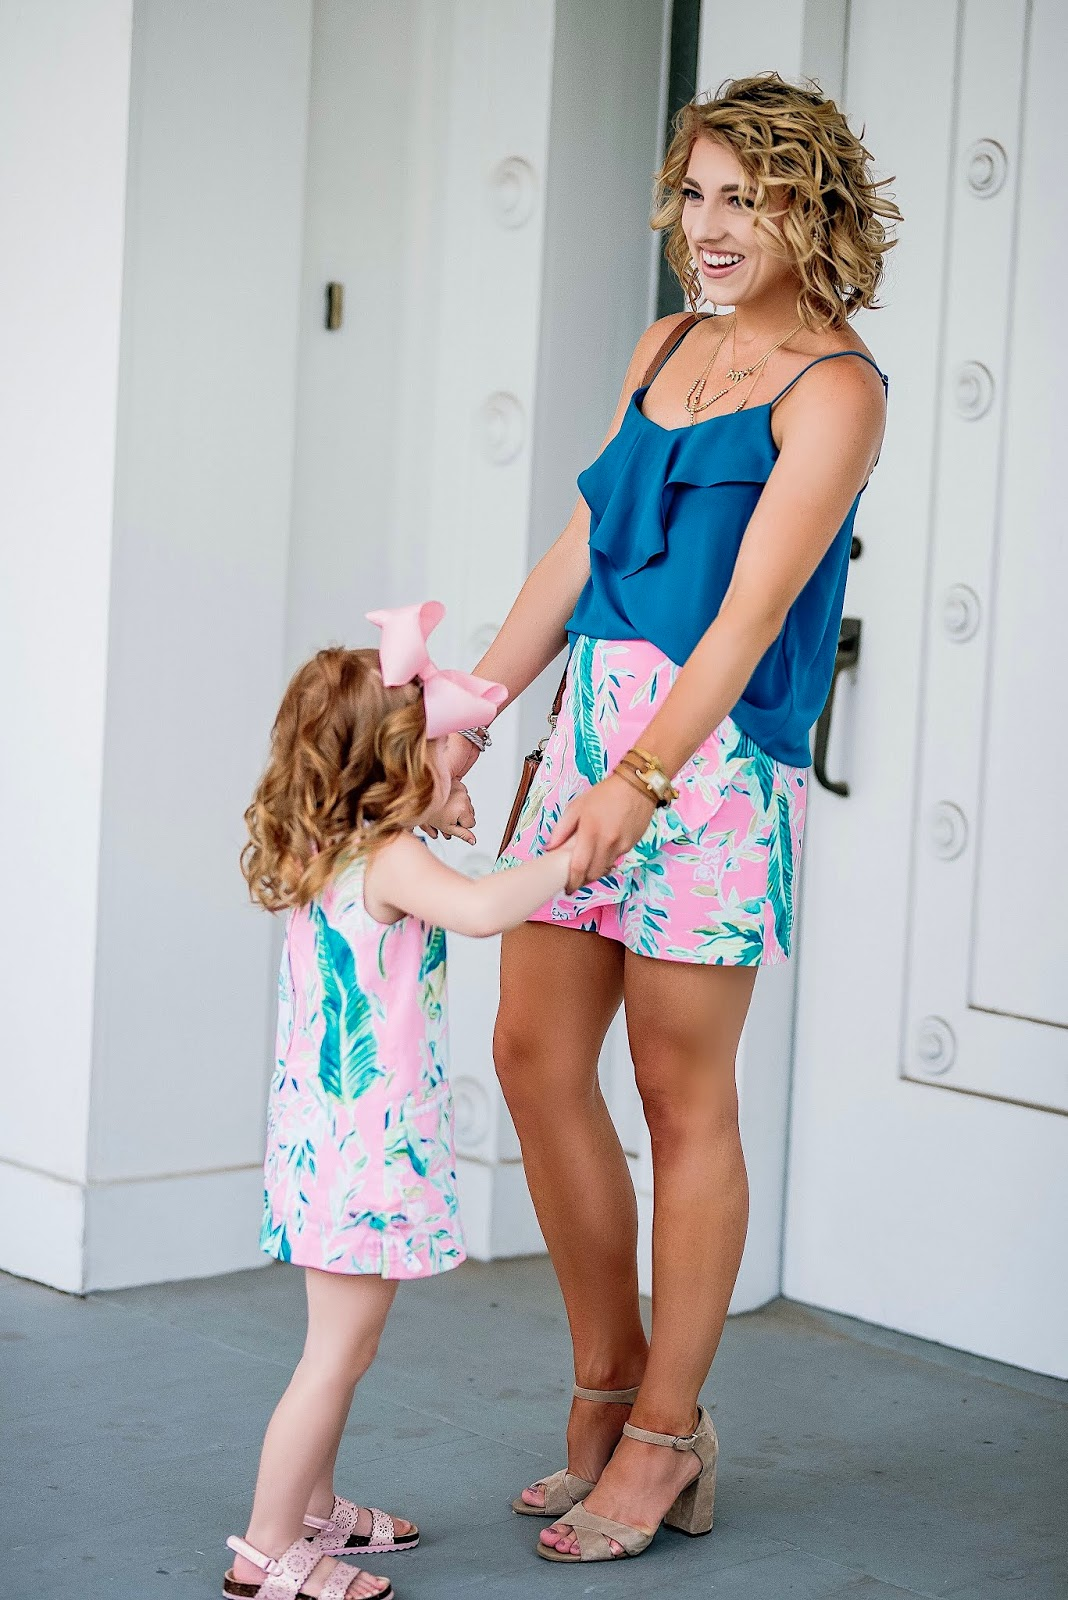 January 2019 Lilly Pulitzer After Party Sale - Something Delightful Blog